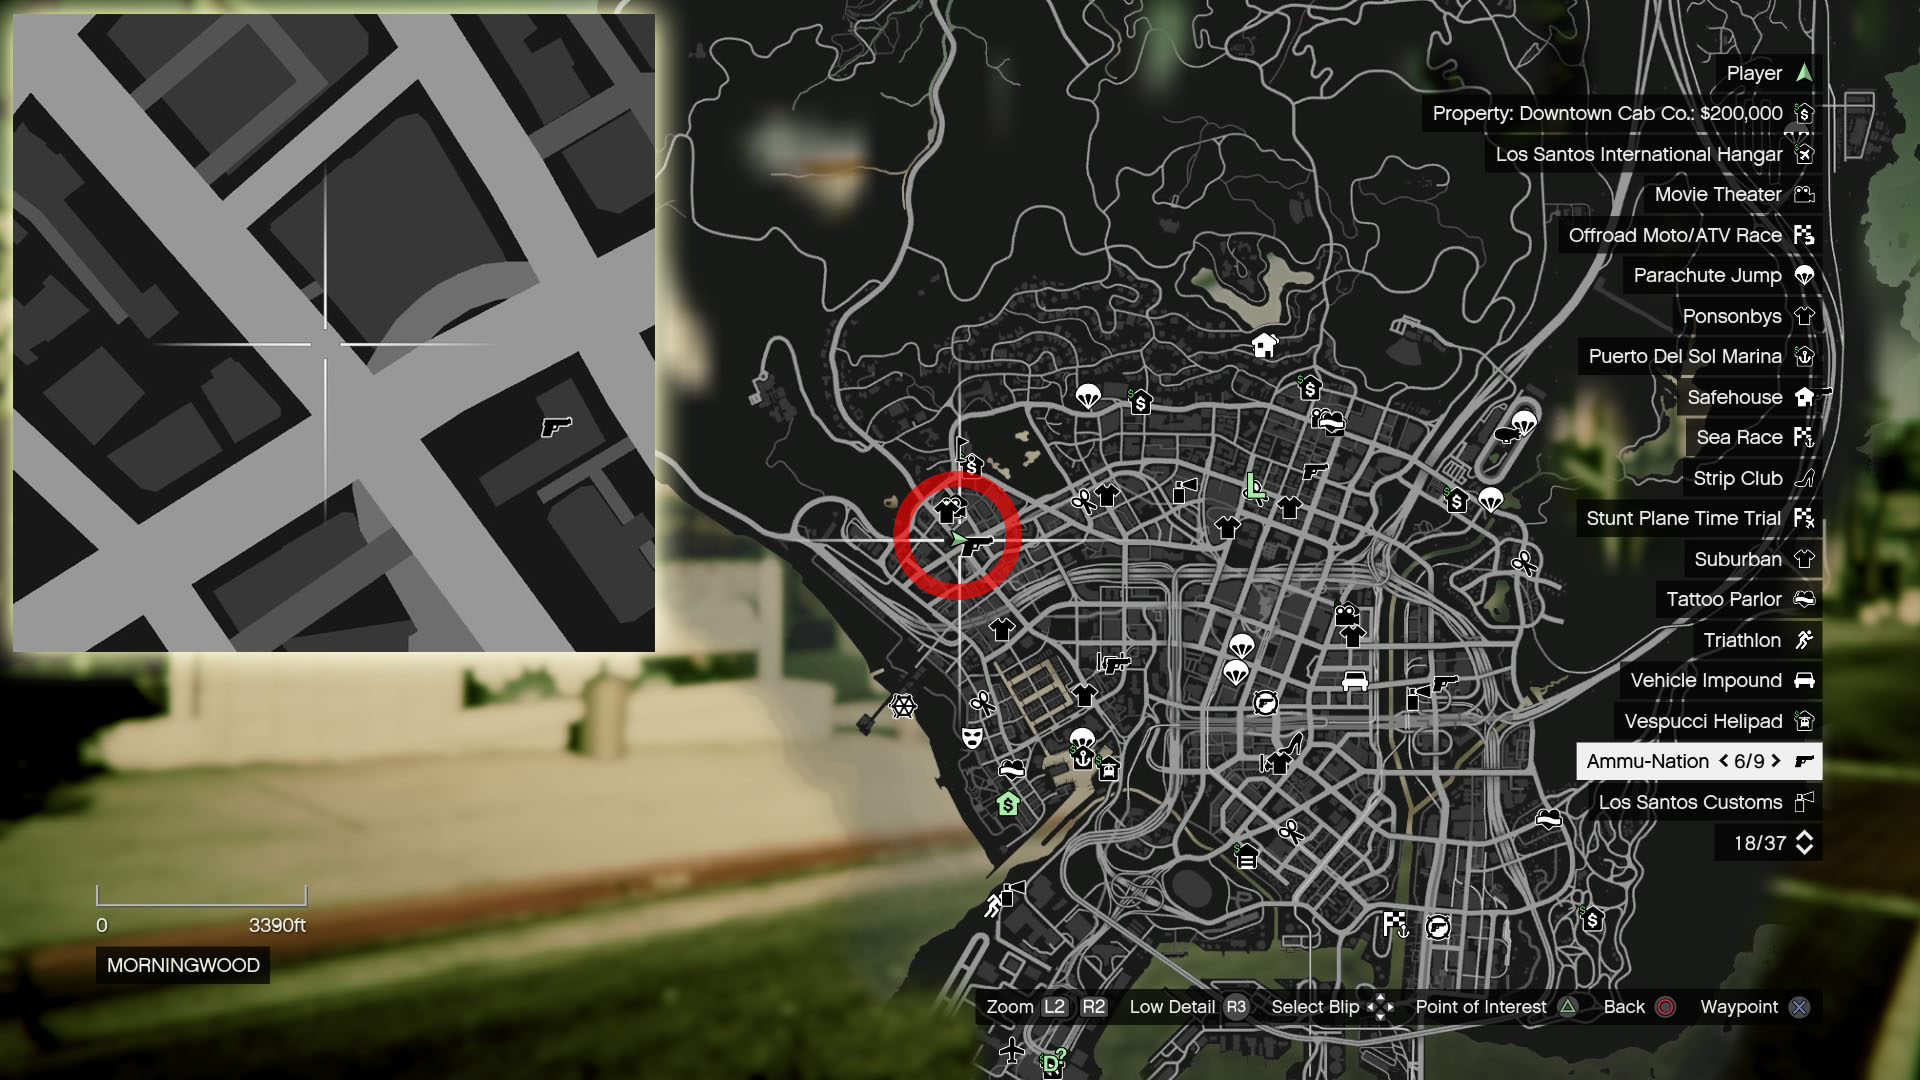 Gta Stock Market >> GTA V Morningwood Monkey Mosaics - Gosu Noob Gaming Guides